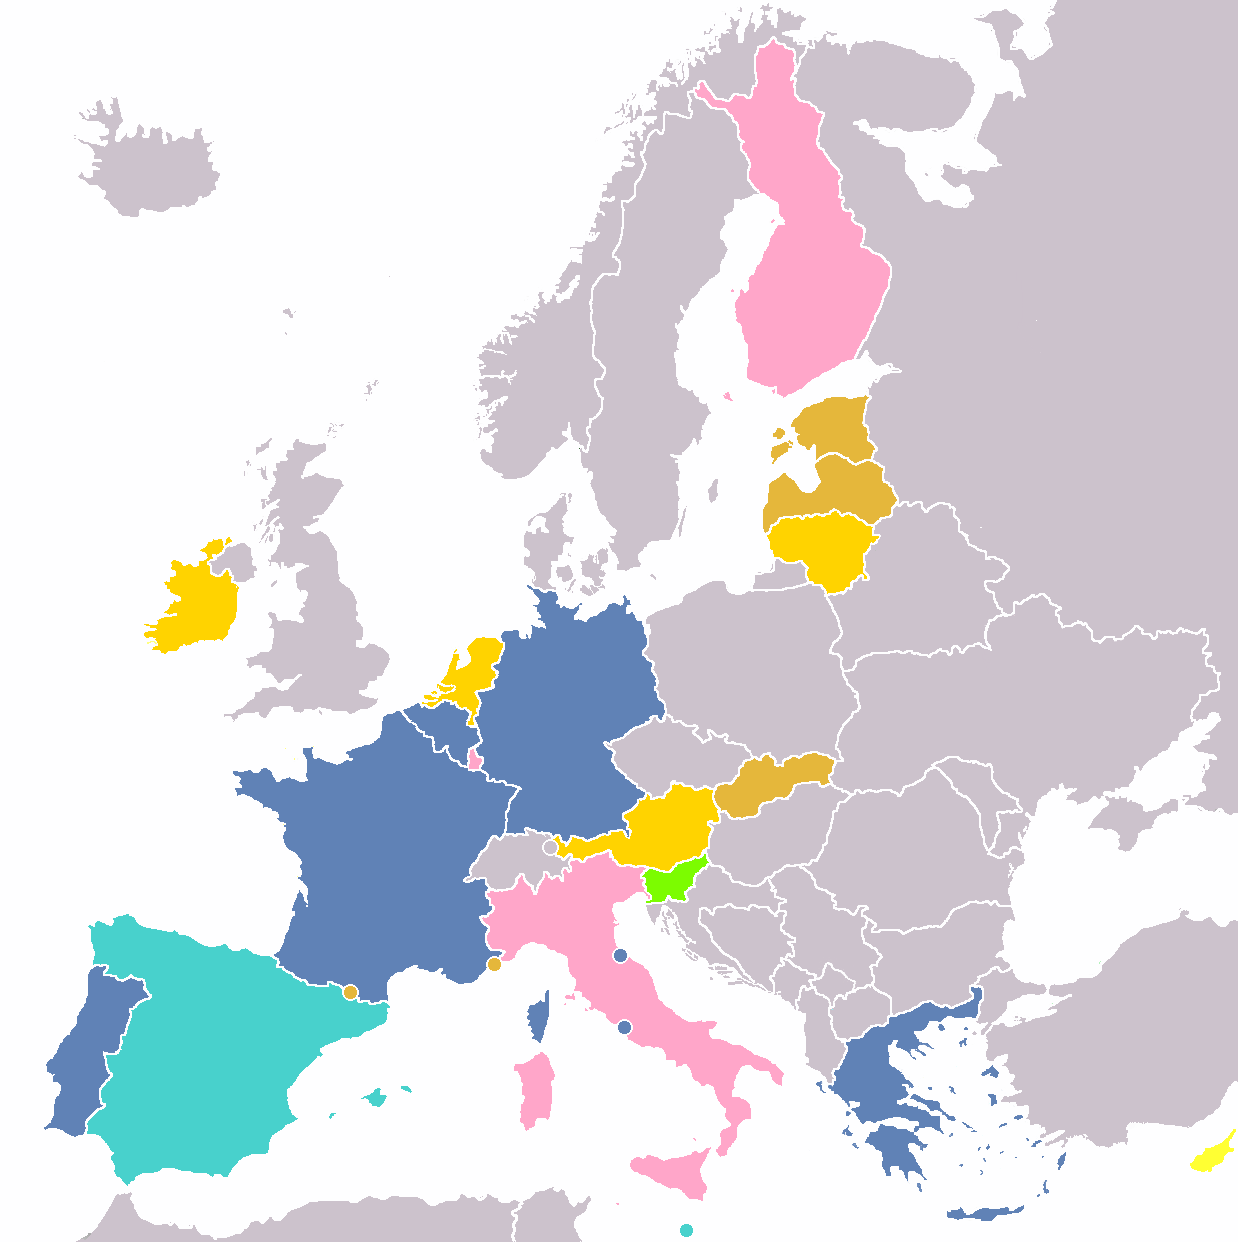 European Union memorative 2 euro coins by number